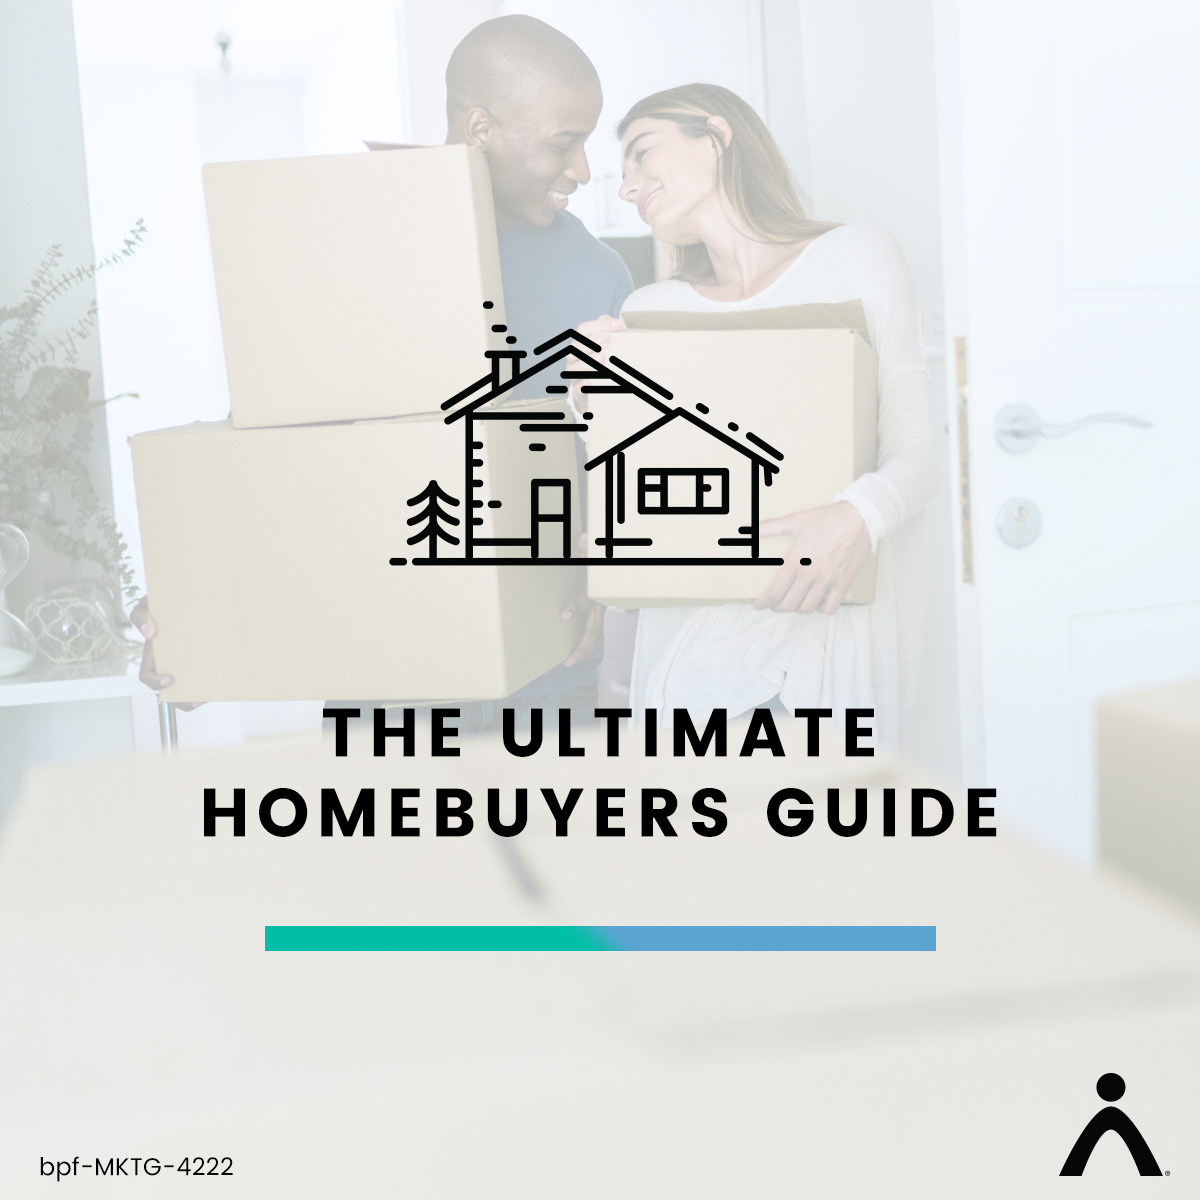 bp_Homebuyers-guide_FB-IN-TW_bpf-MKTG-4222.jpg